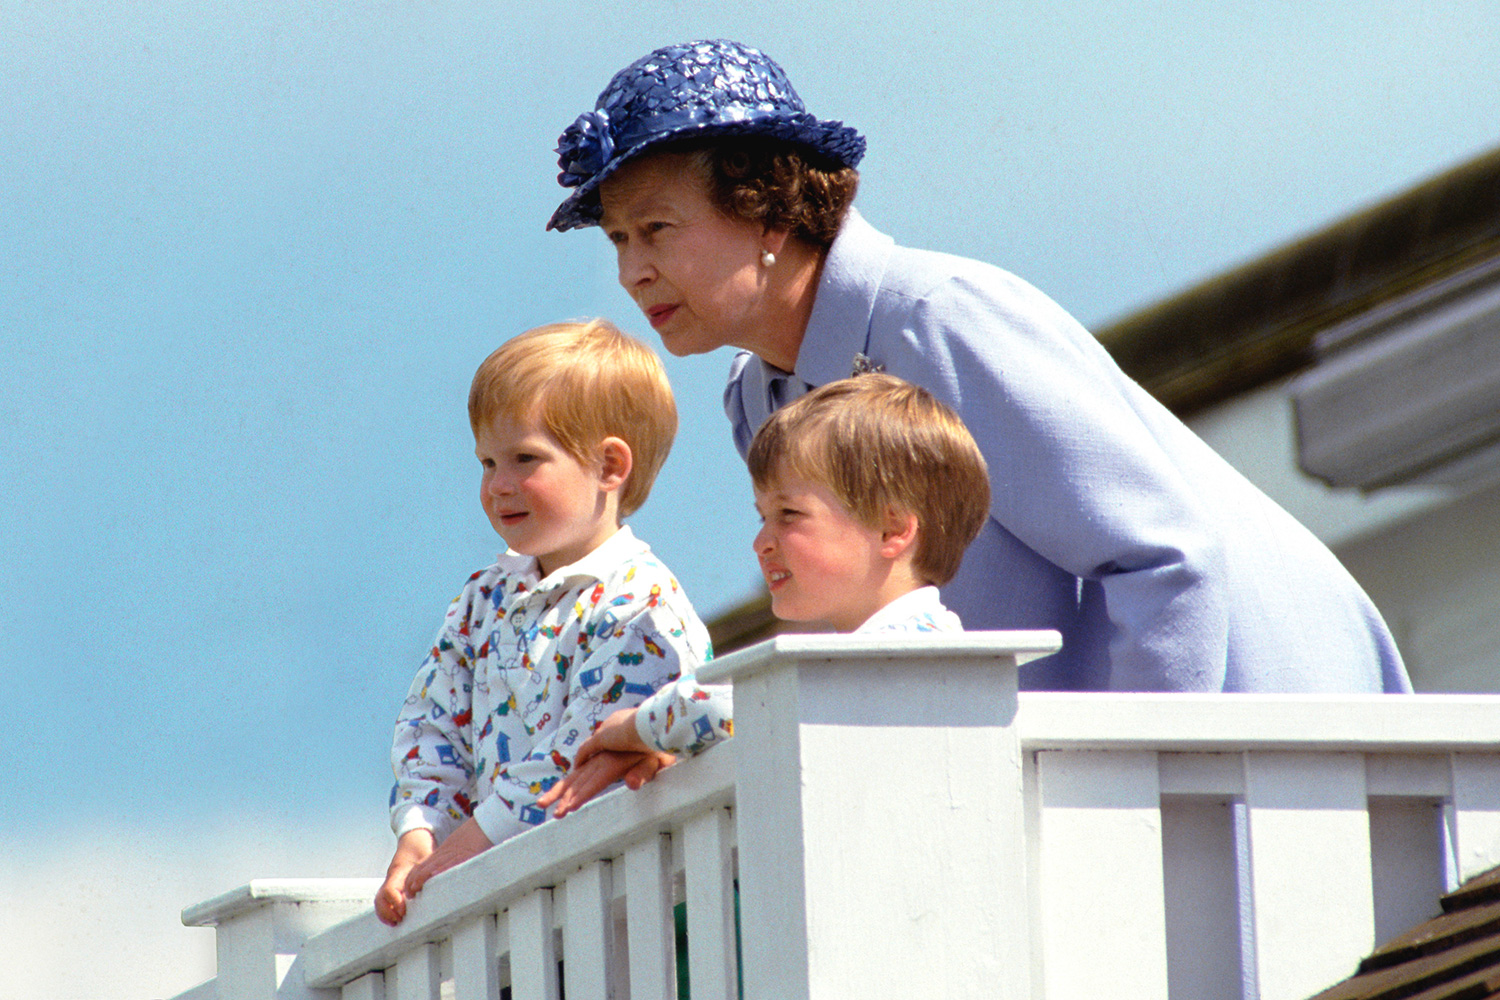 The Queen With Prince William And Prince Harry In The Royal Box At Guards Polo Club, Smiths Lawn, Windsor